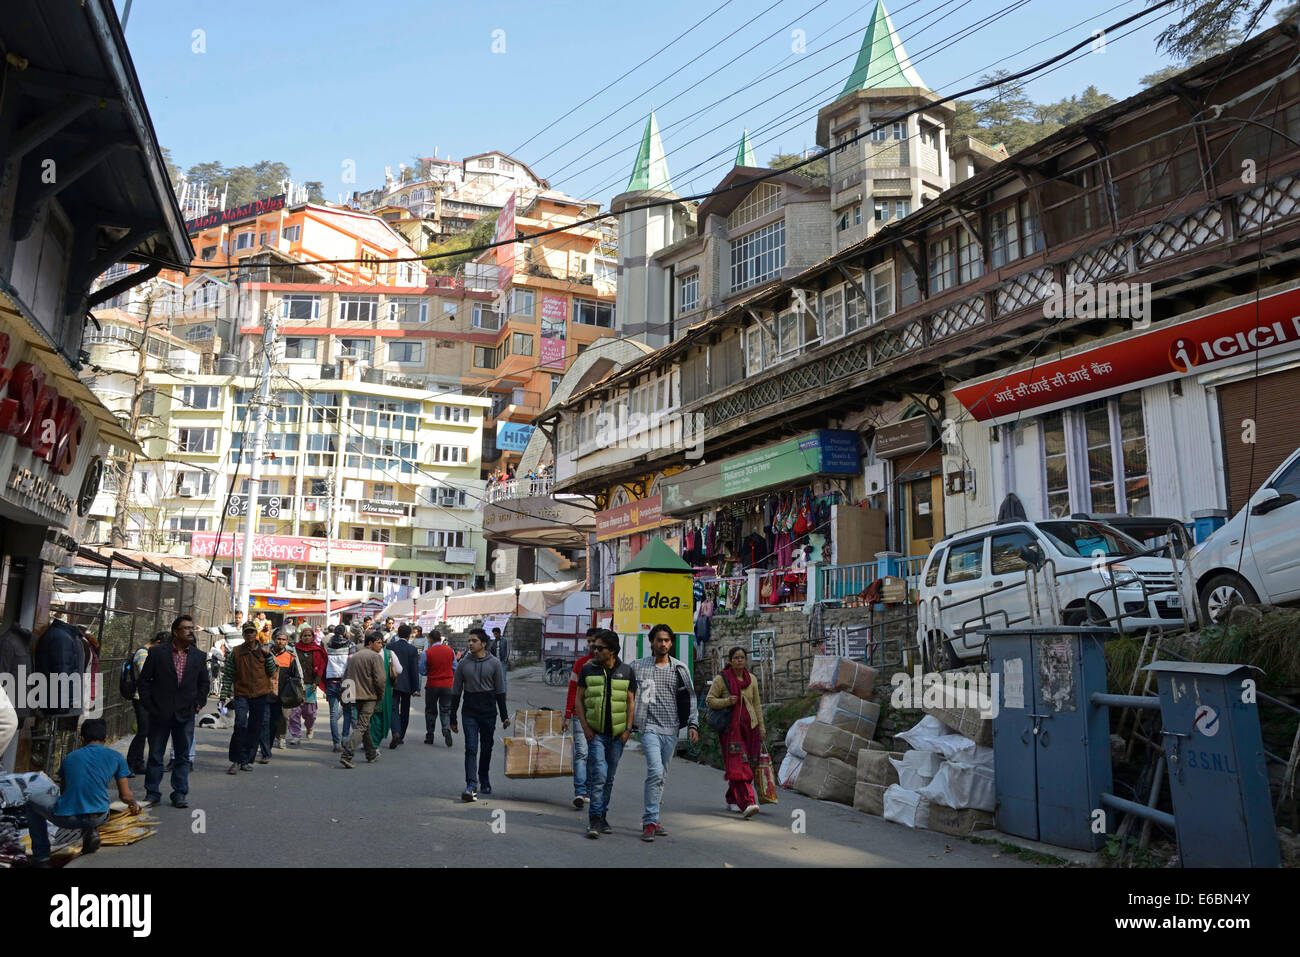 Mall Road  in Shimla is a popular tourist attraction in Himachal Pradesh,India - Stock Image